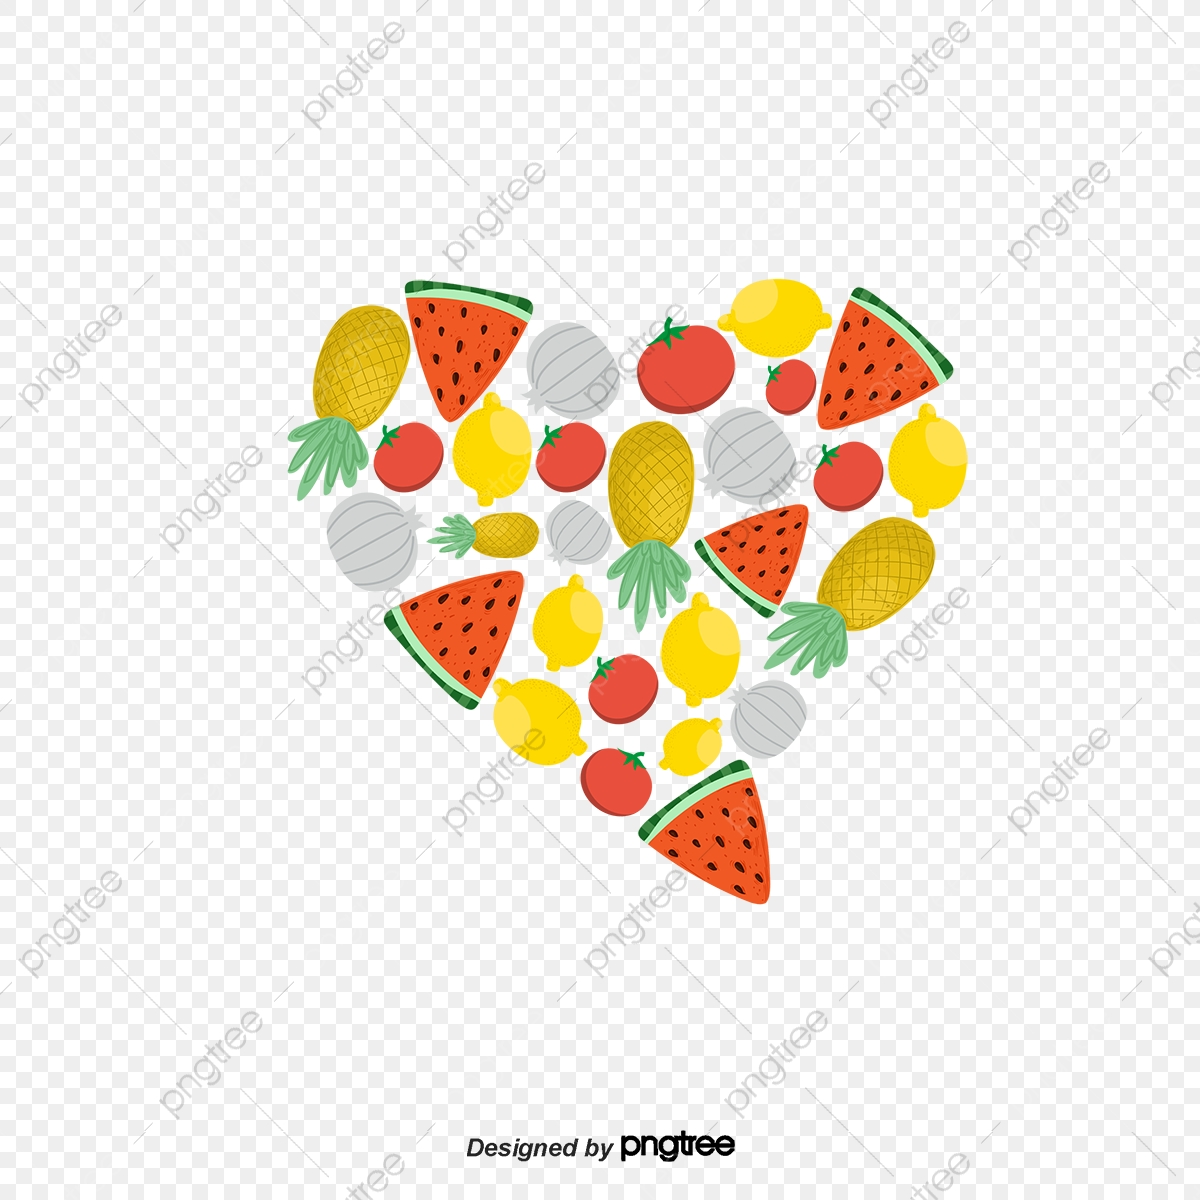 Clipart heart food. Healthy vegetables